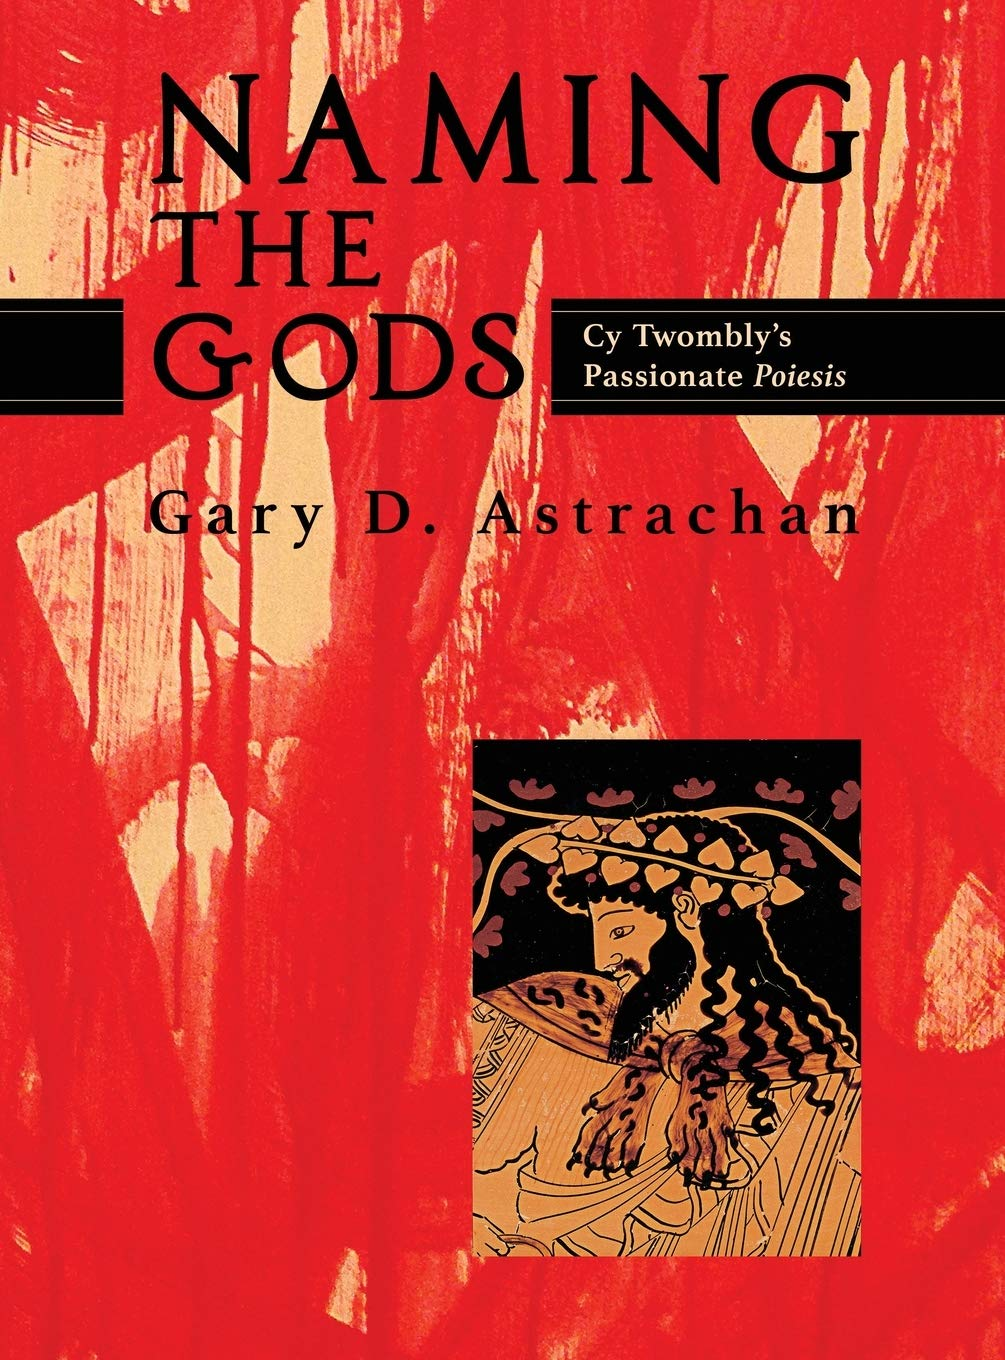 Naming the Gods - Gary D. Astrachan